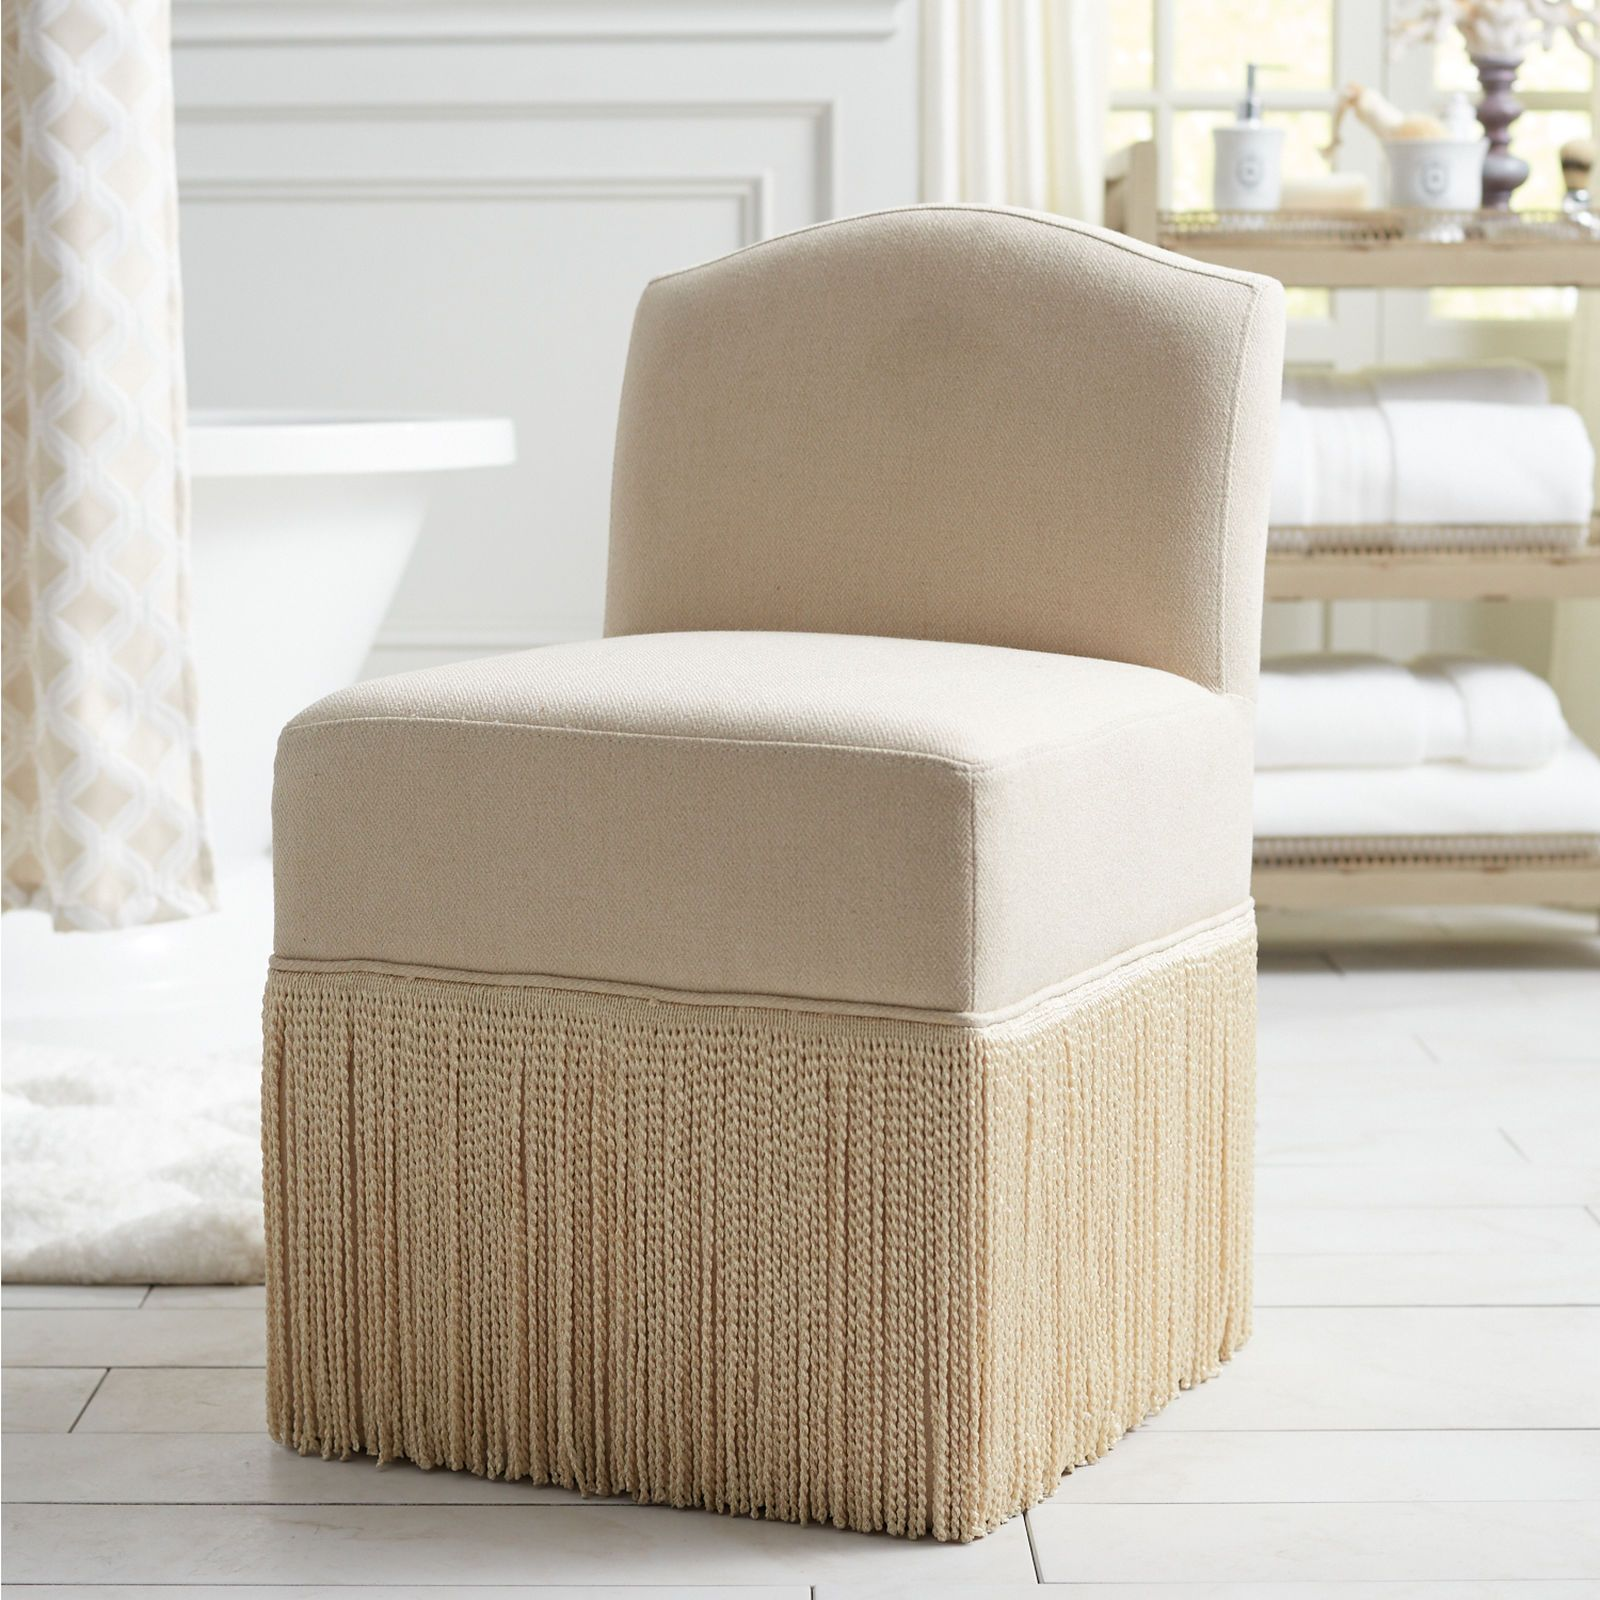 Awesome Kassey Vanity Stool Things For The Home I Like Vanity Evergreenethics Interior Chair Design Evergreenethicsorg